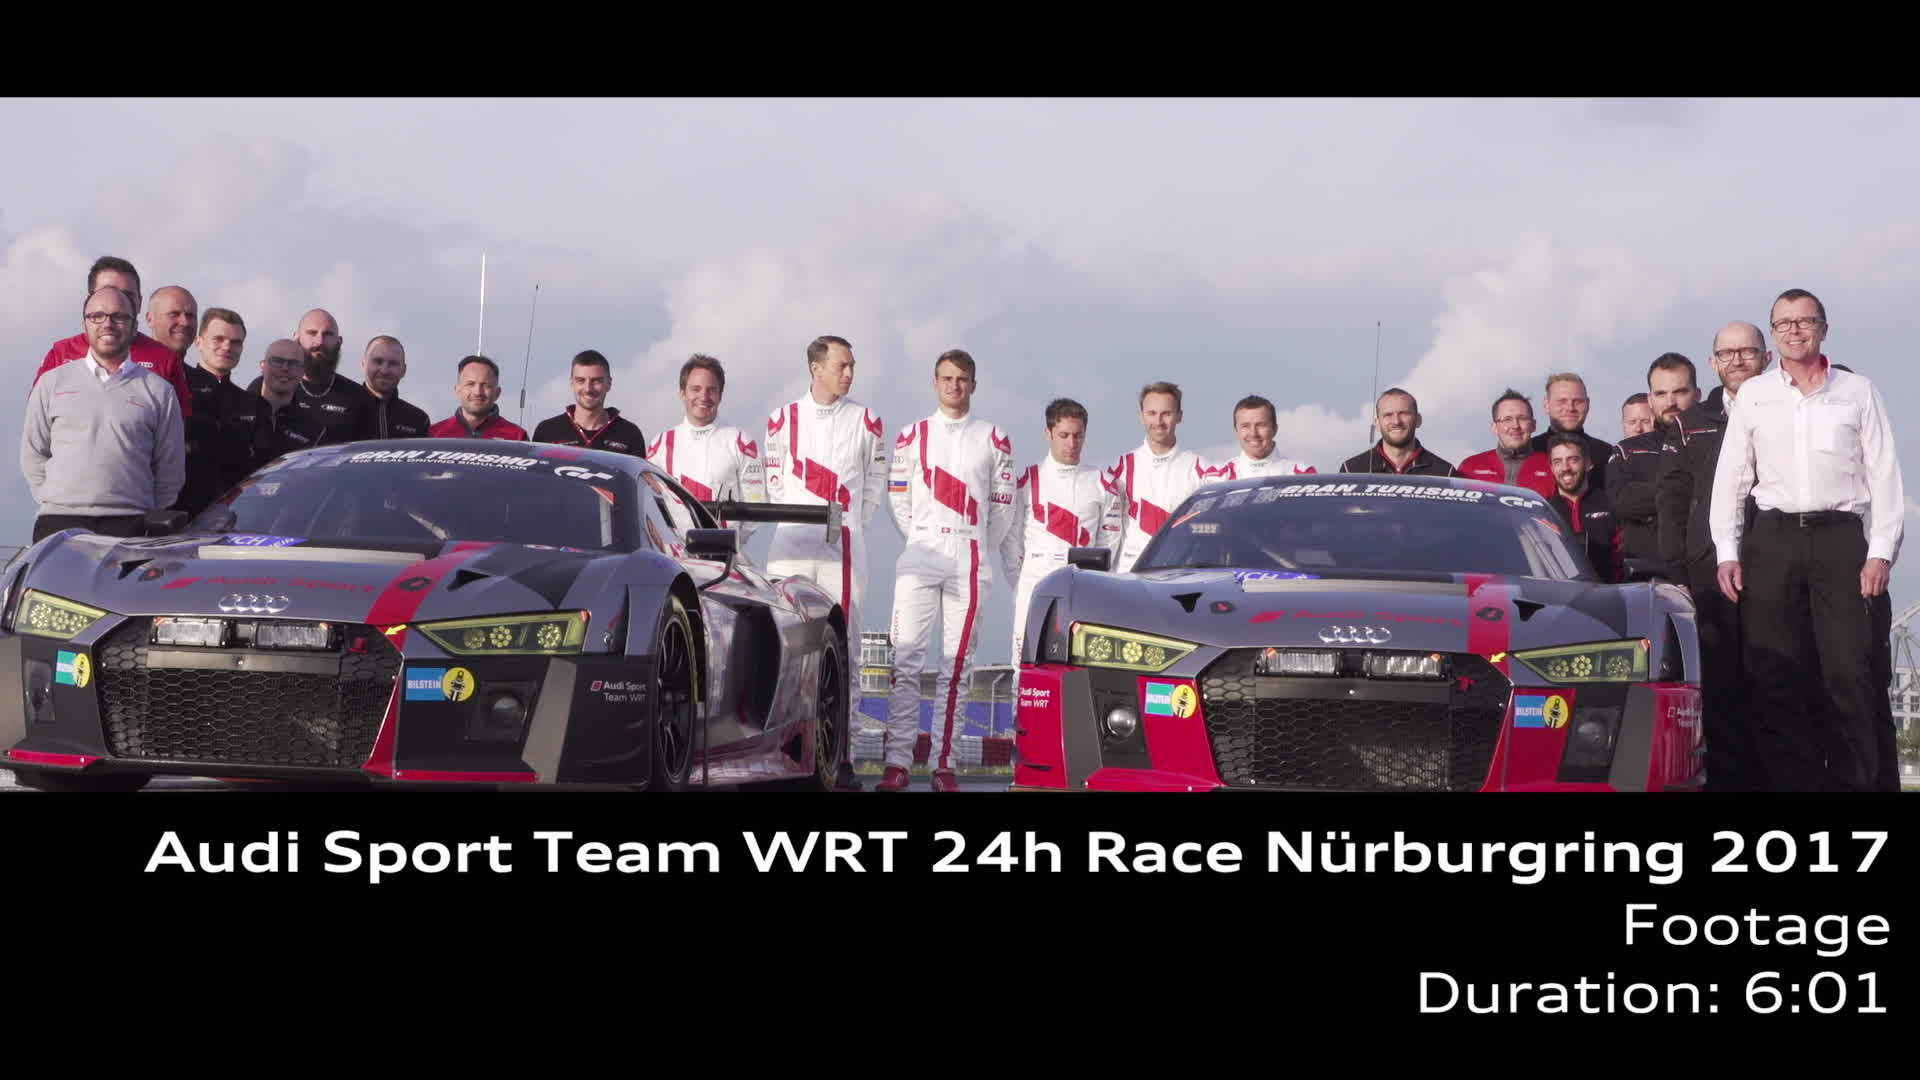 Audi Sport Team WRT 2017 - Footage